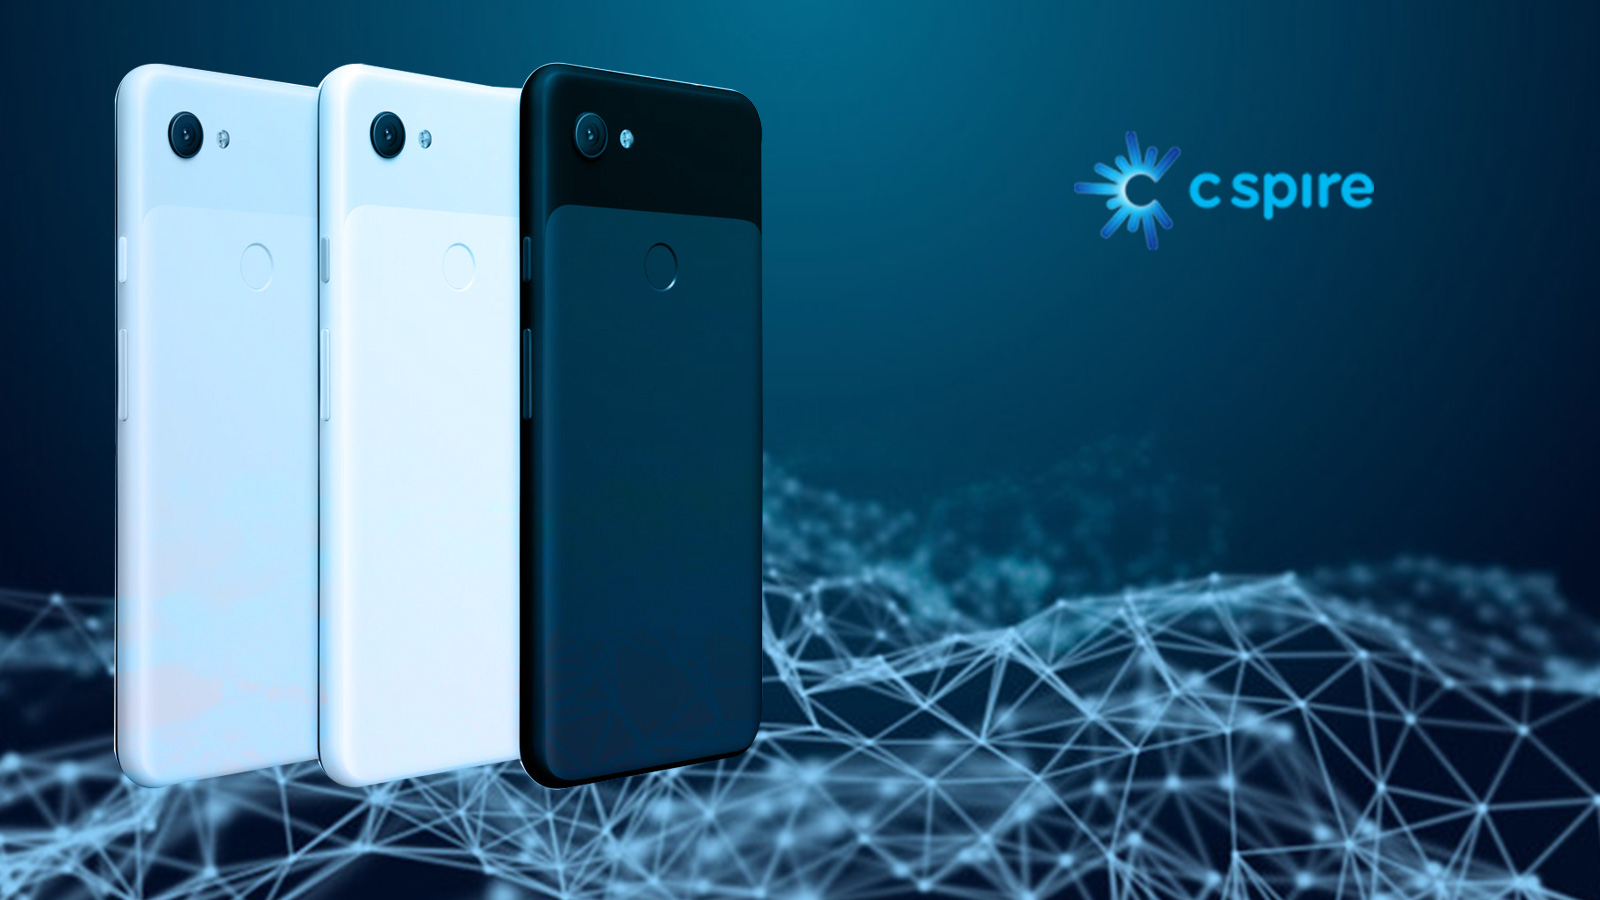 Google Debuts New Pixel 3a and Pixel 3a XL Smartphones on C Spire 4G